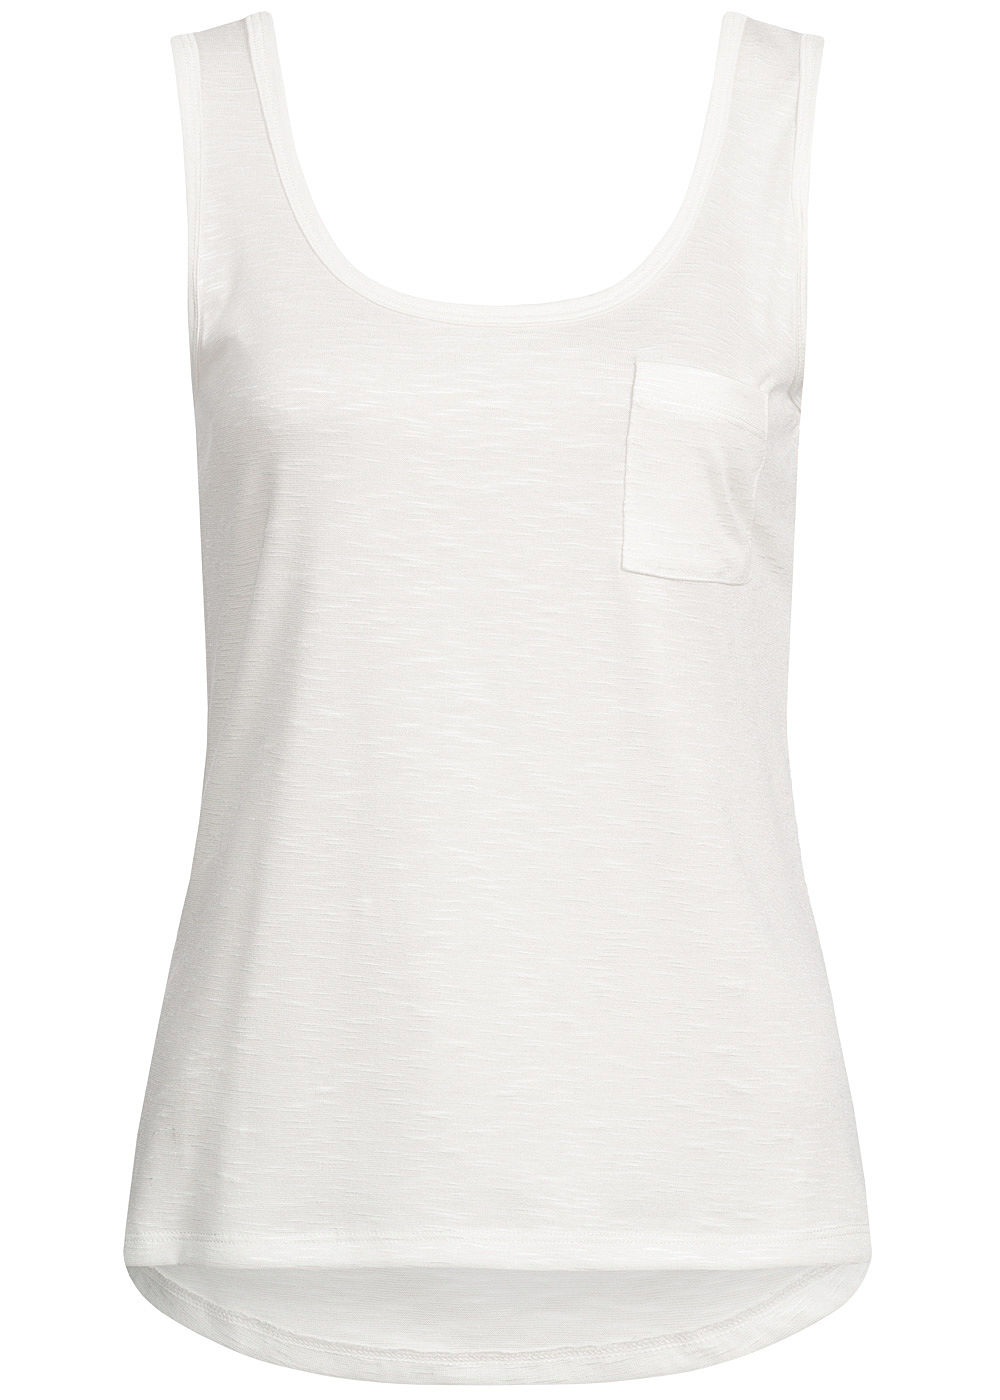 Hailys Damen Tank Top Breast Pocket weiss - Art.-Nr.: 19051901-XXL-WH